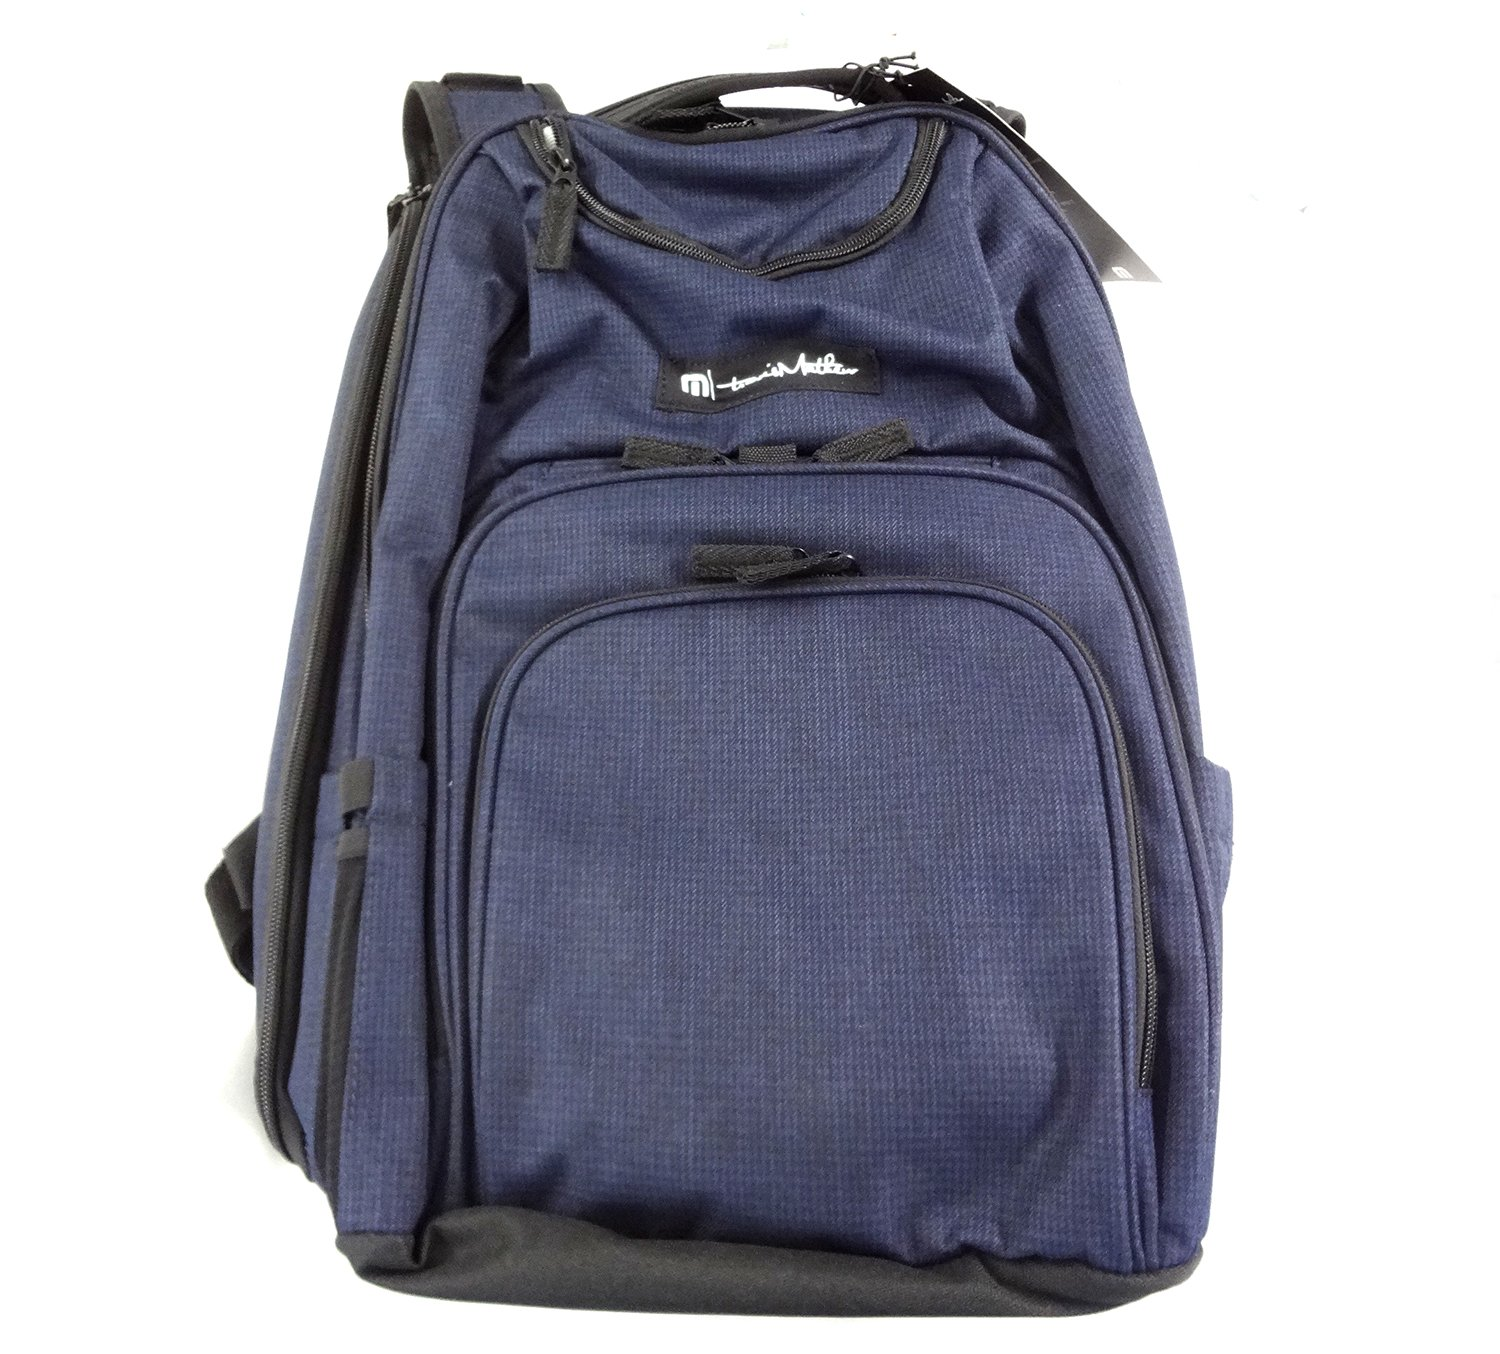 NEW Travis Mathew Malibu Blue Nights Backpack/Carry-On Bag